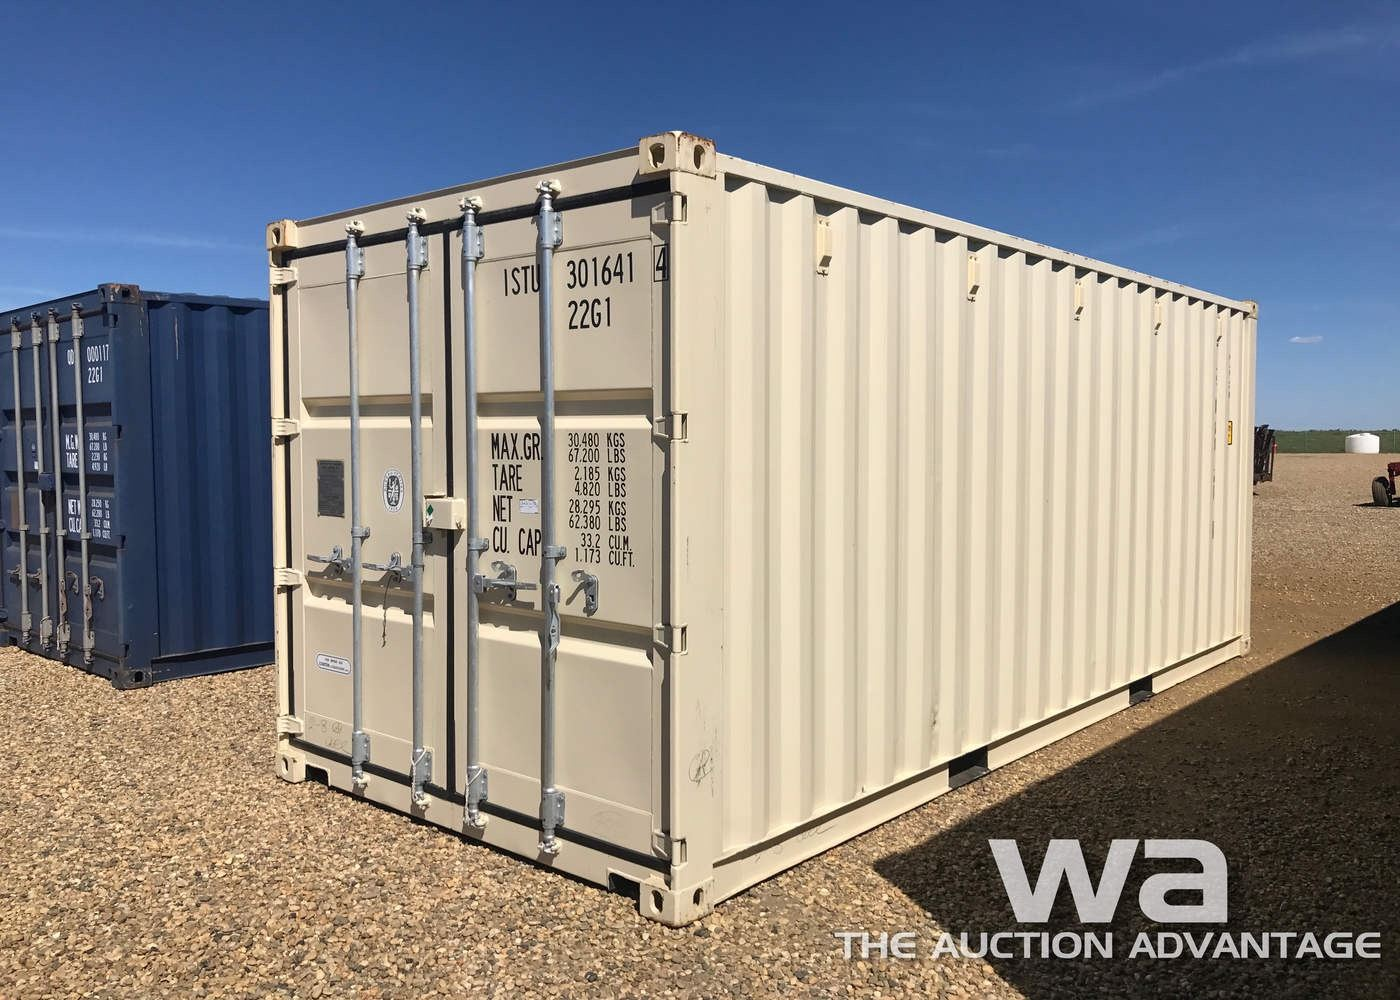 2015 ONE WAY SHIPPING CONTAINER